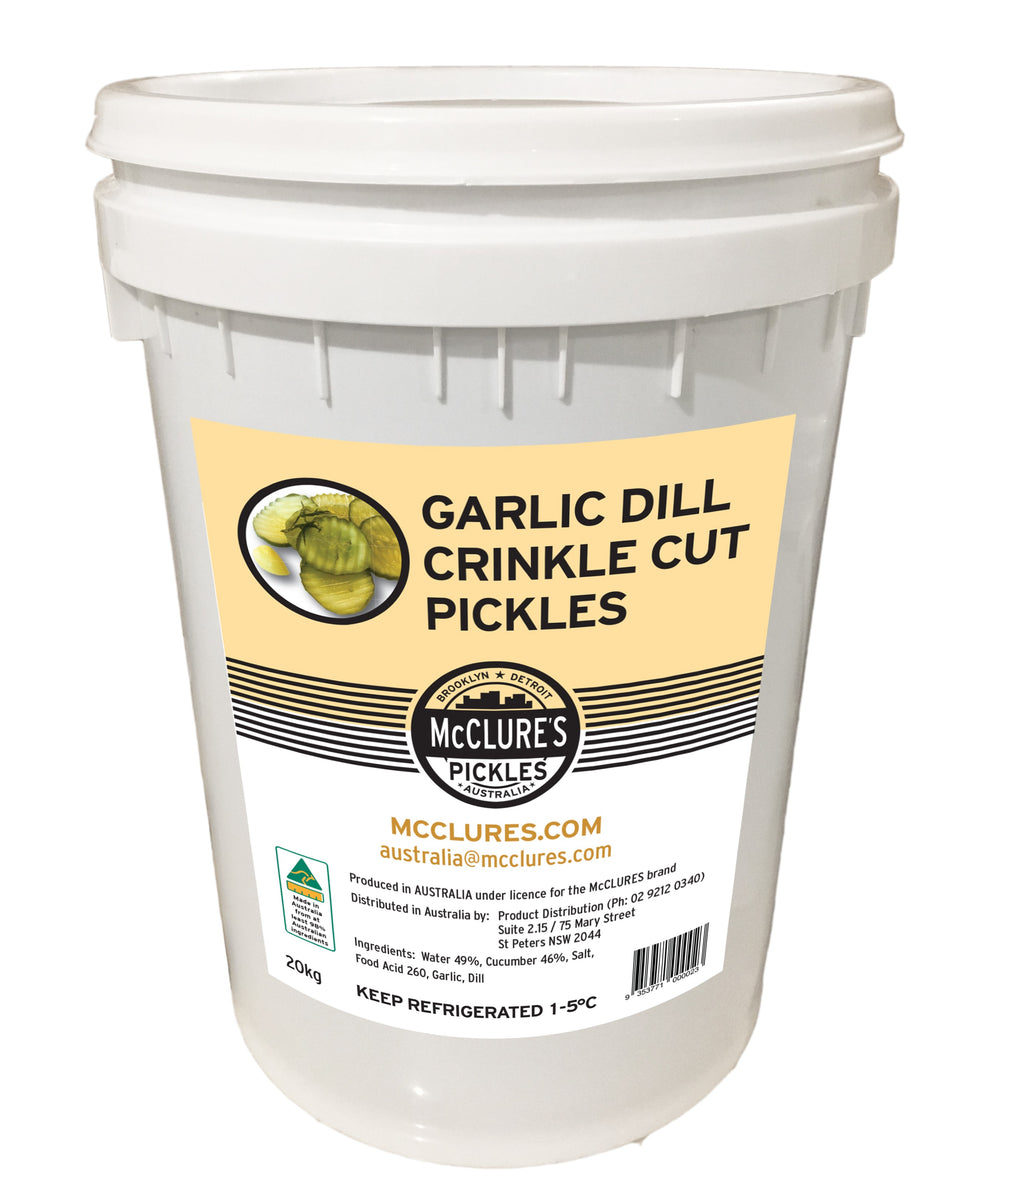 Crinkle Cut Garlic Dill Sliced Pickles 20kg Tub (NDW 10.1kg - Approx 1550 to 1690pc) McClures